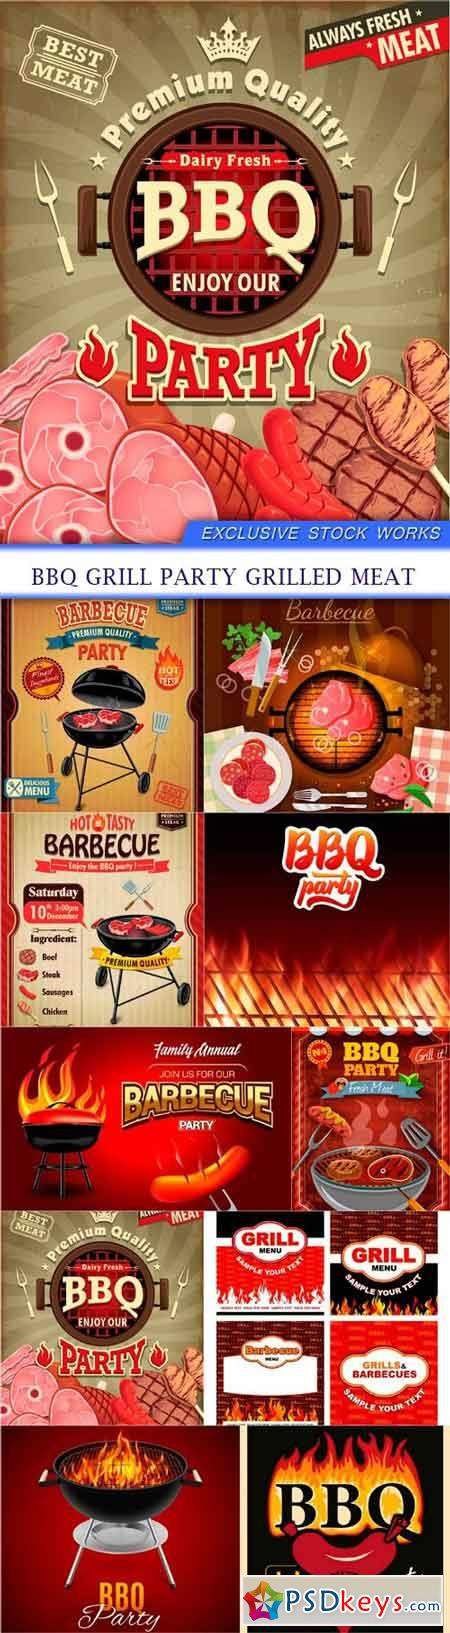 Bbq grill party grilled meat 10X EPS